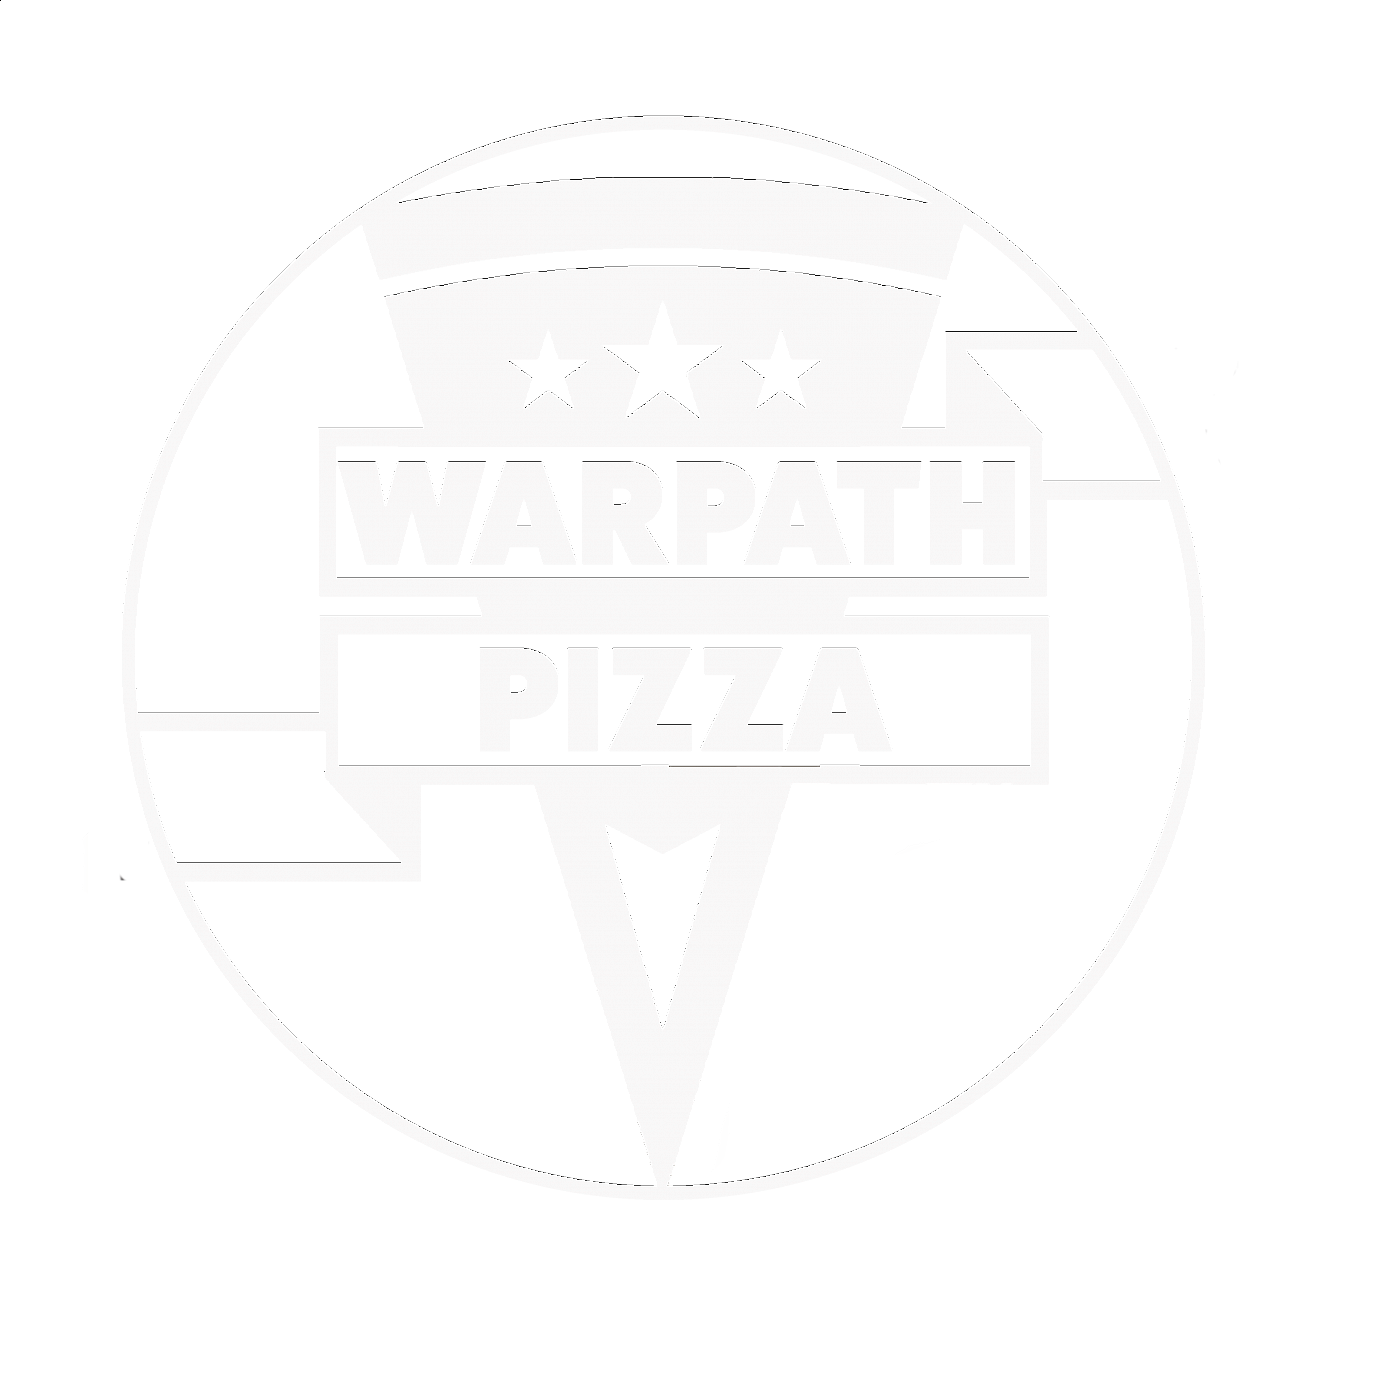 Warpath Pizza & Pub logo scroll